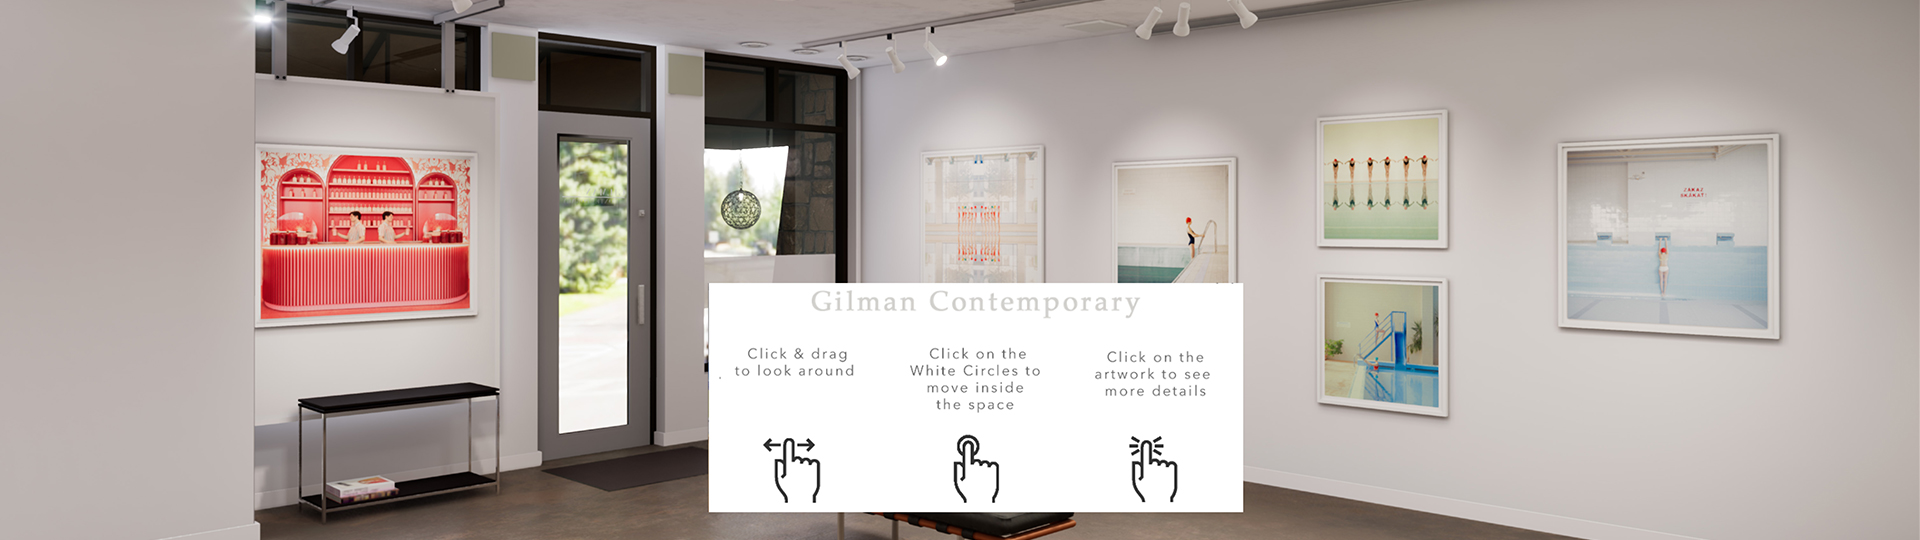 Maria Svarbova Virtual Tour at Gilman Contemporary Gallery in Sun Valley, Idaho